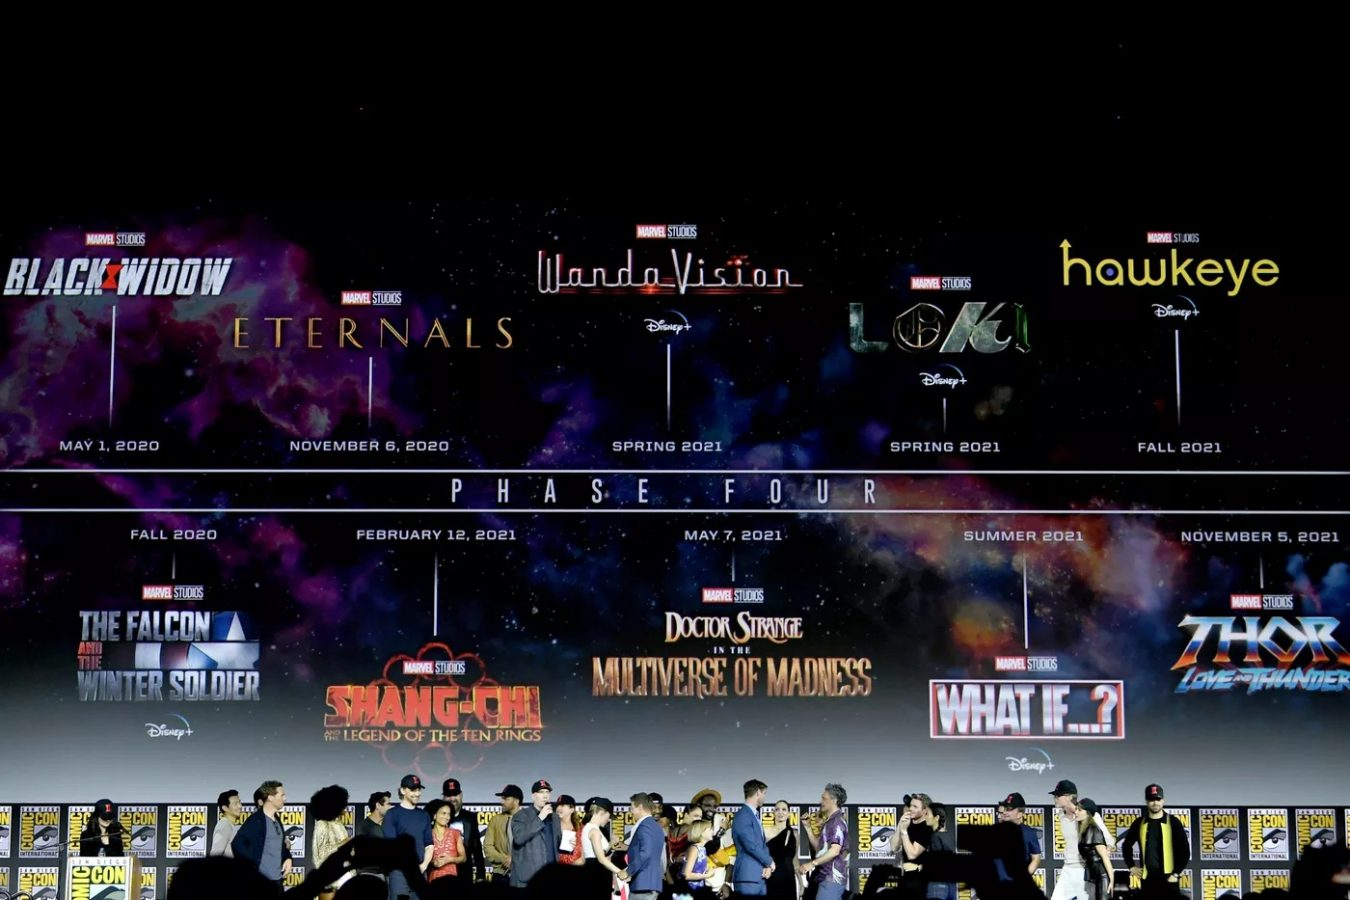 thor love and thunder, marvel phase 4 leaks, thor love and thunder leaks, thor sequel, upcoming thor movie, who will be next thor